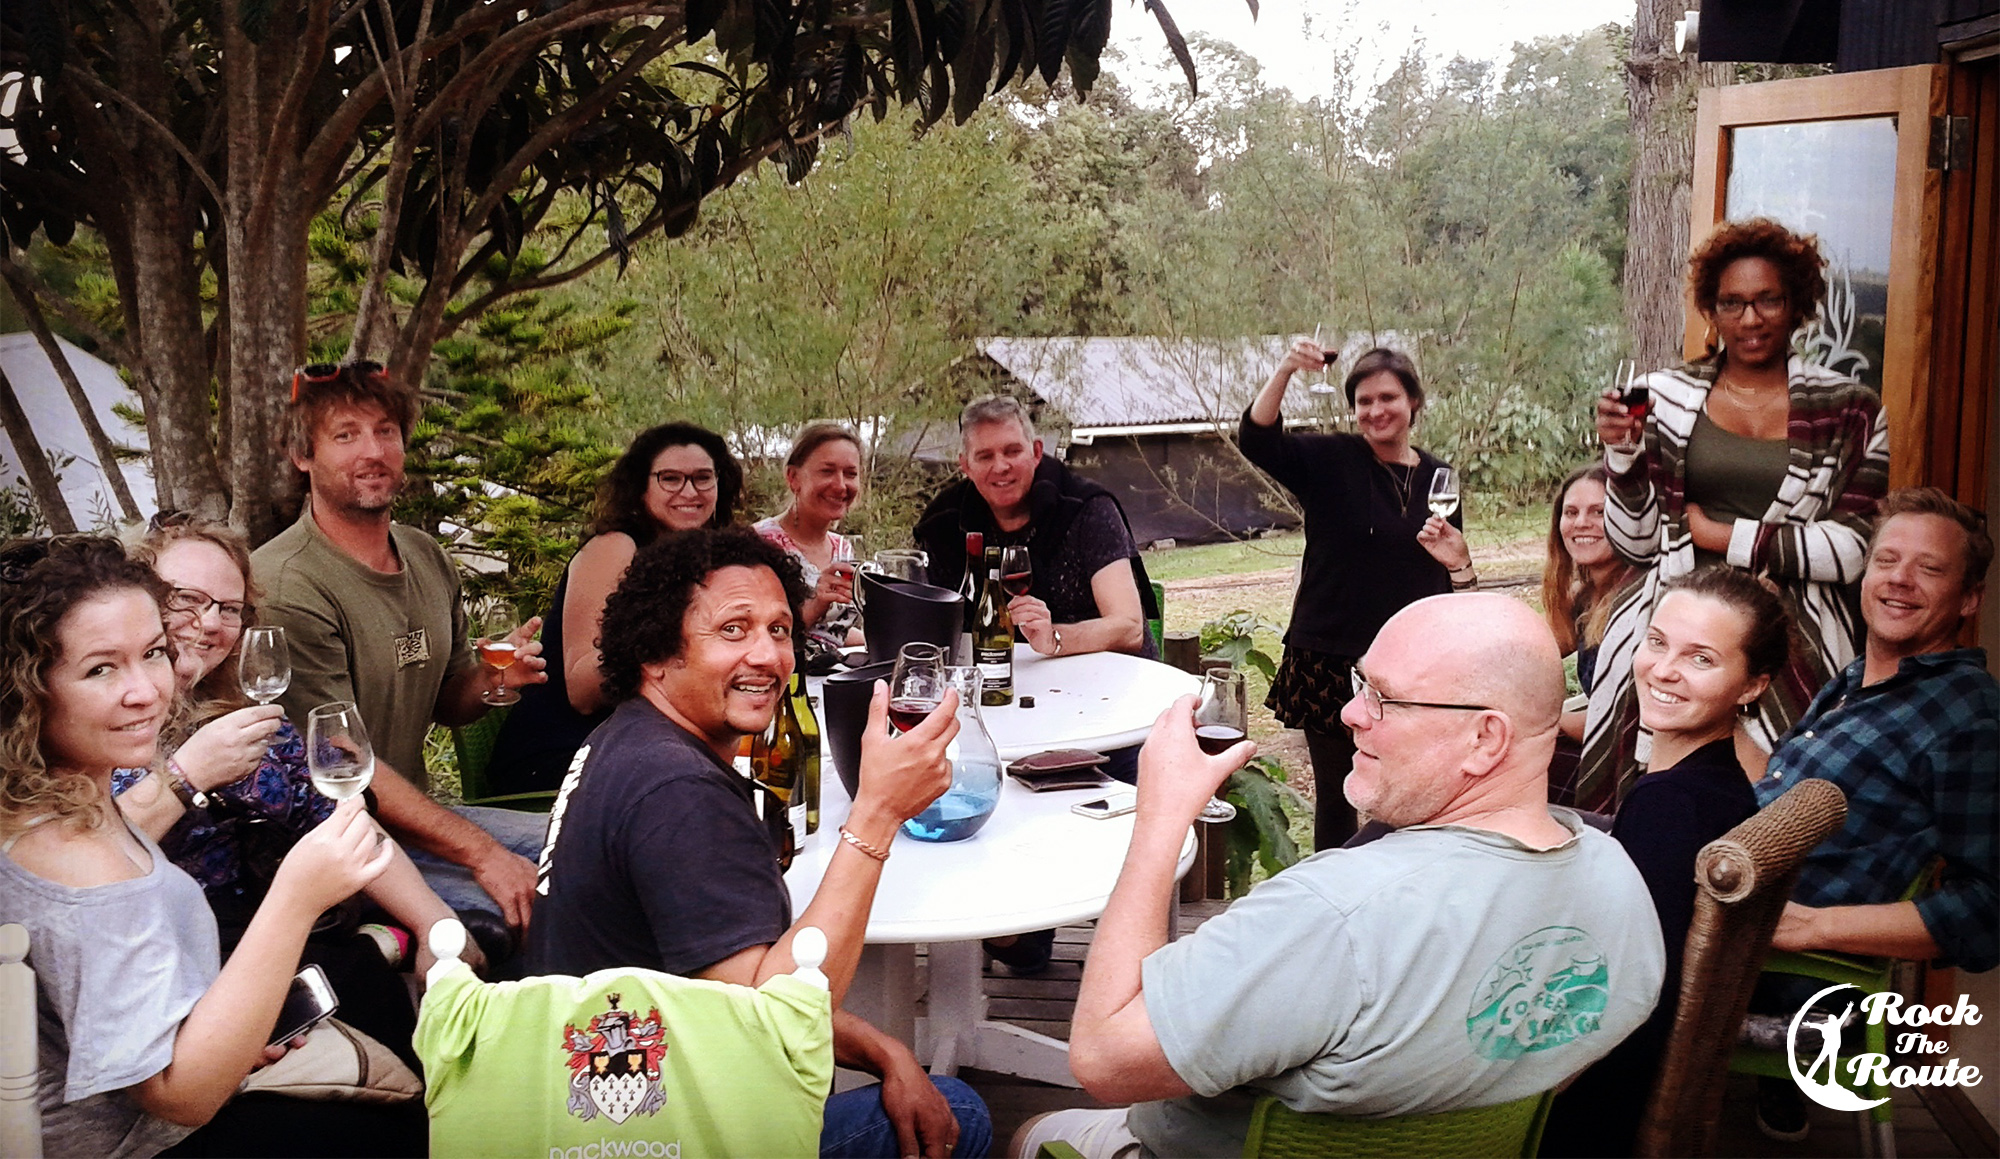 5 Reasons Why You Should Book a Wine Tour with Rock the Route